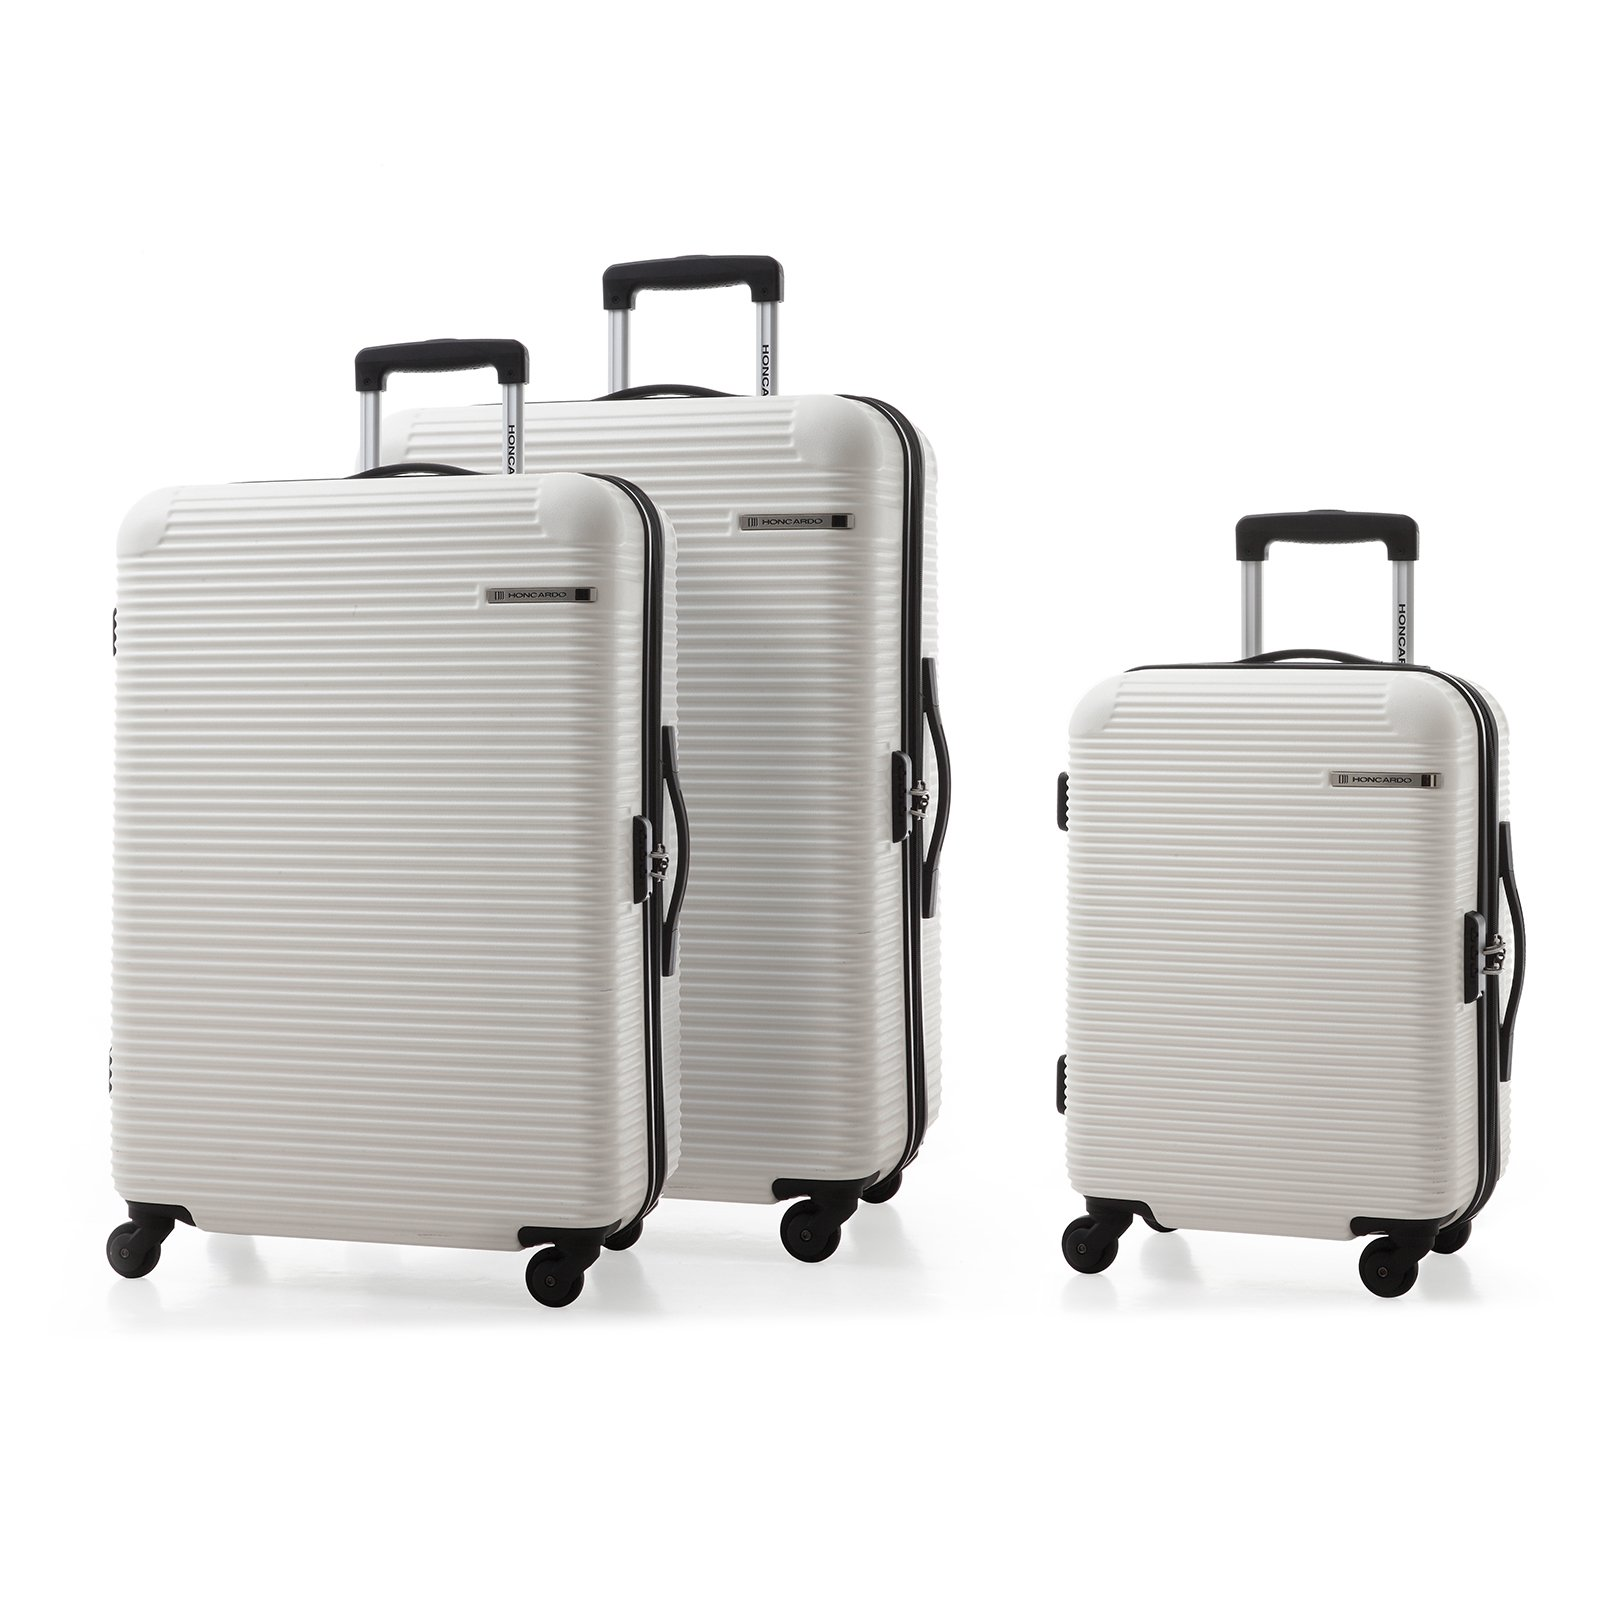 HONCARDO Luggage 3 Pieces Lightweight Spinner Suitcase (20'', 24''&28''), White